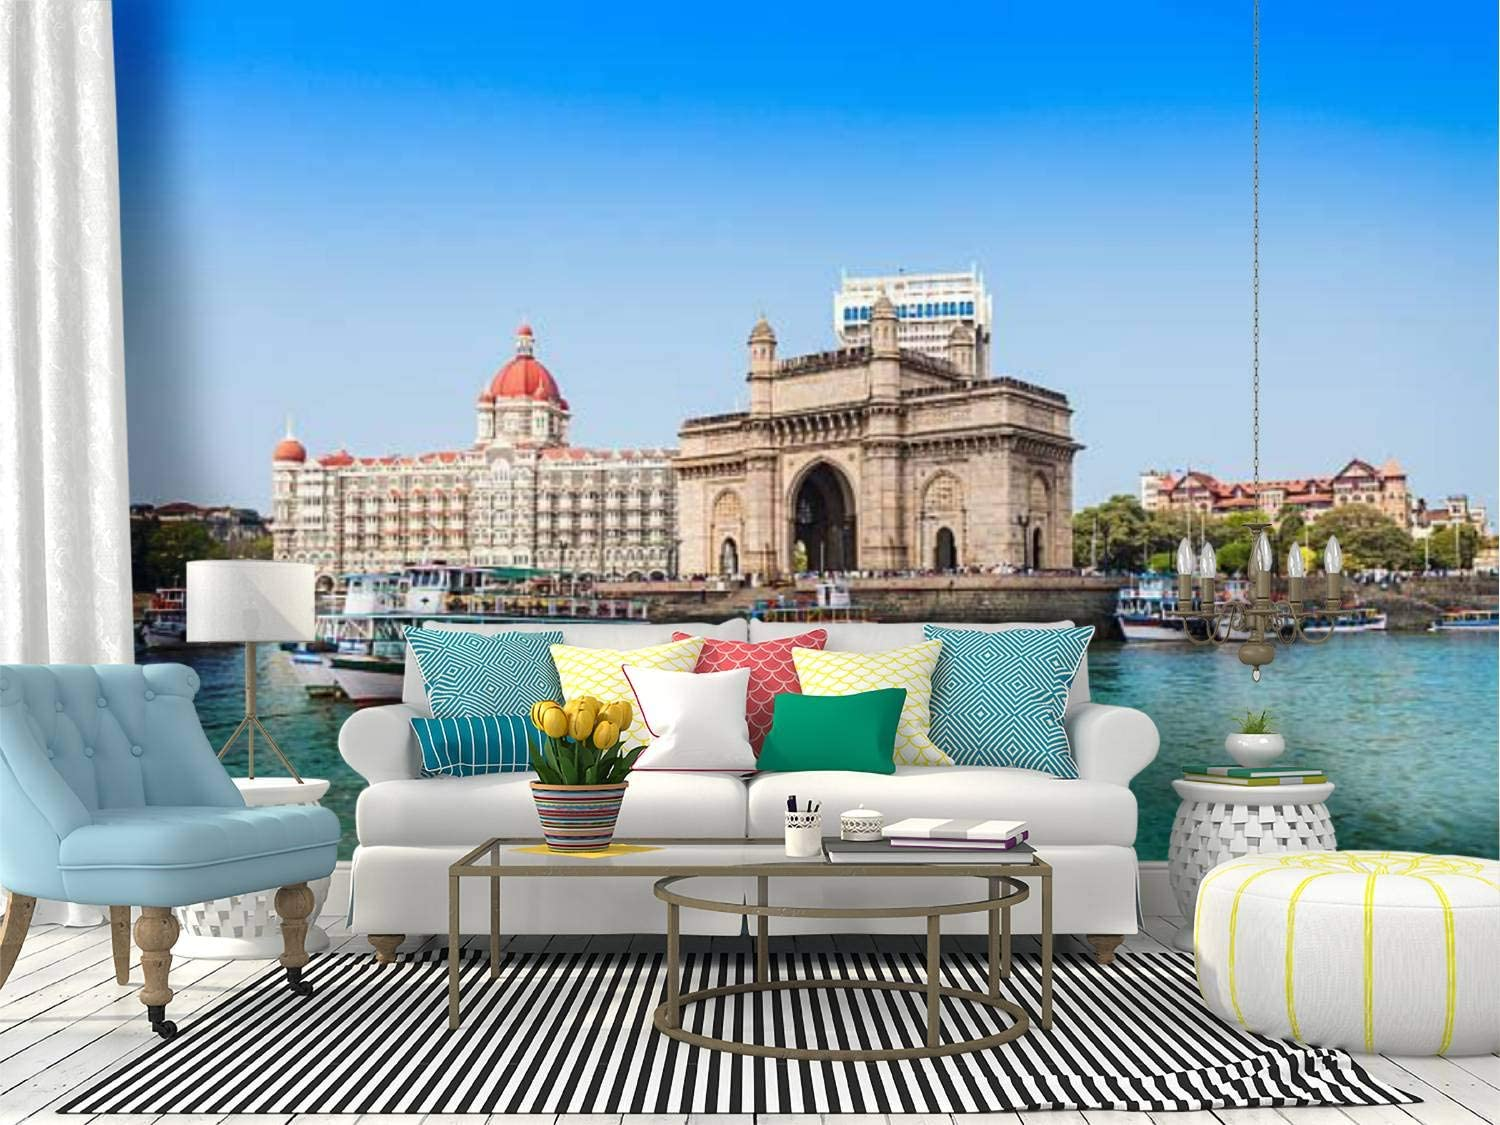 Amazon Com Self Adhesive Wallpaper Roll Paper Taj Mahal Hotel And Gateway Of India Famous Touristic Town Stock Removable Peel And Stick Wallpaper Decorative Wall Mural Posters Home Covering Interior Film Home